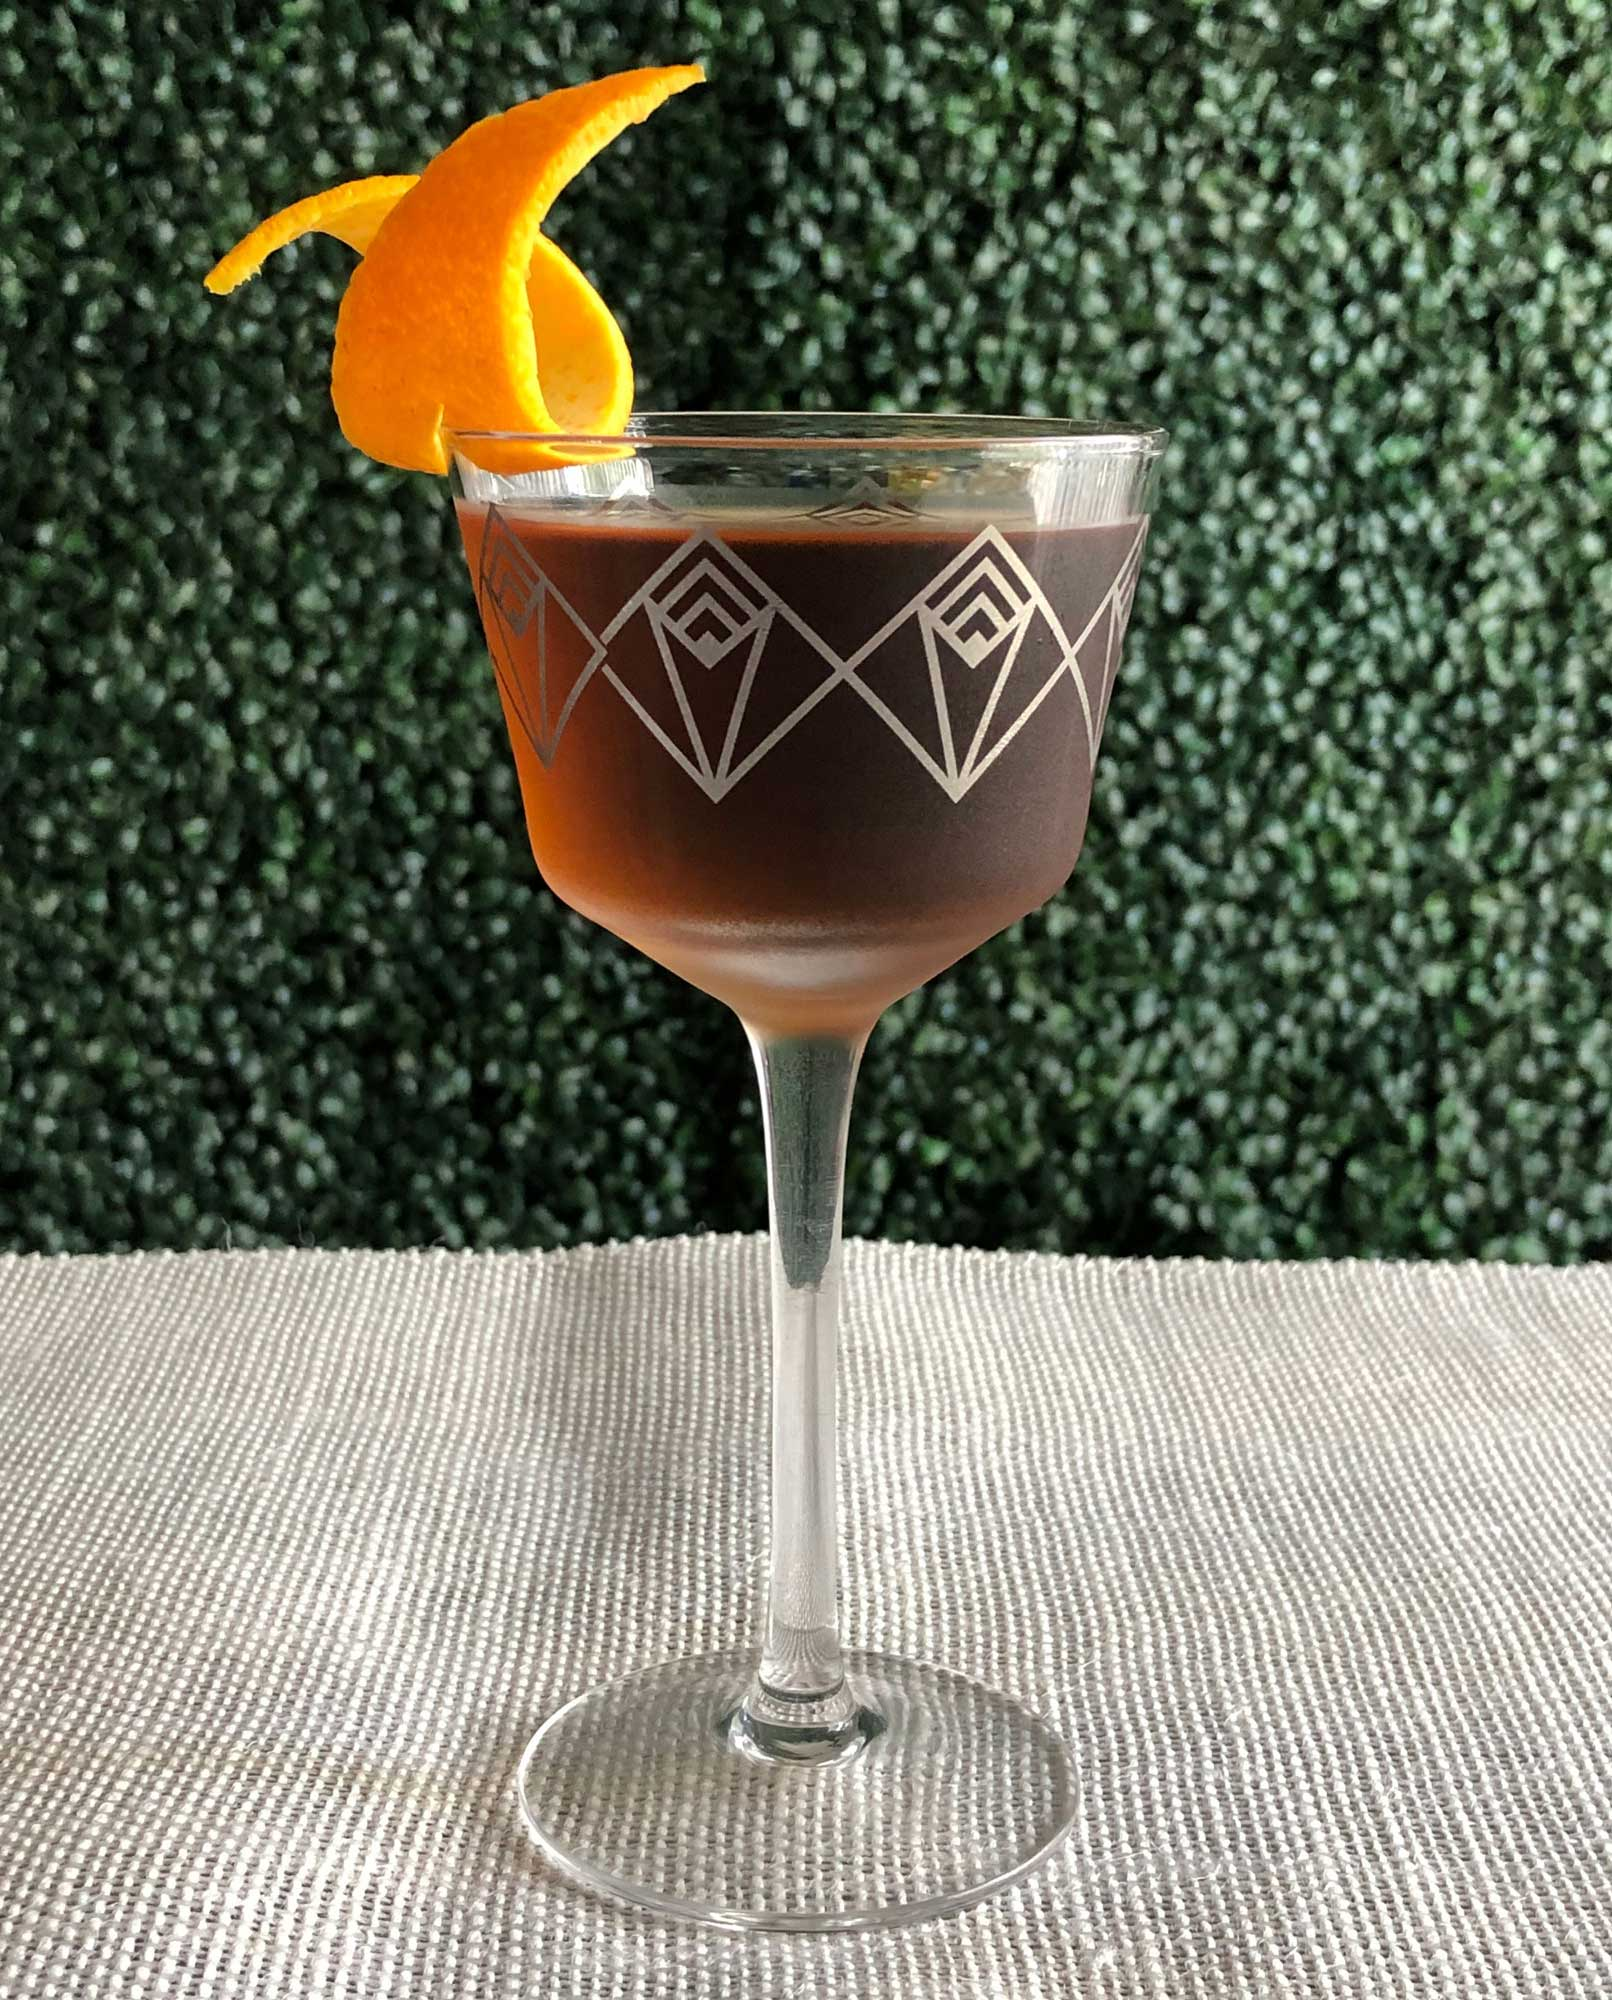 An example of the Bonal Martinez, the mixed drink (cocktail) featuring Hayman's Old Tom Gin, Bonal Gentiane-Quina, and maraschino liqueur; photo by Lee Edwards